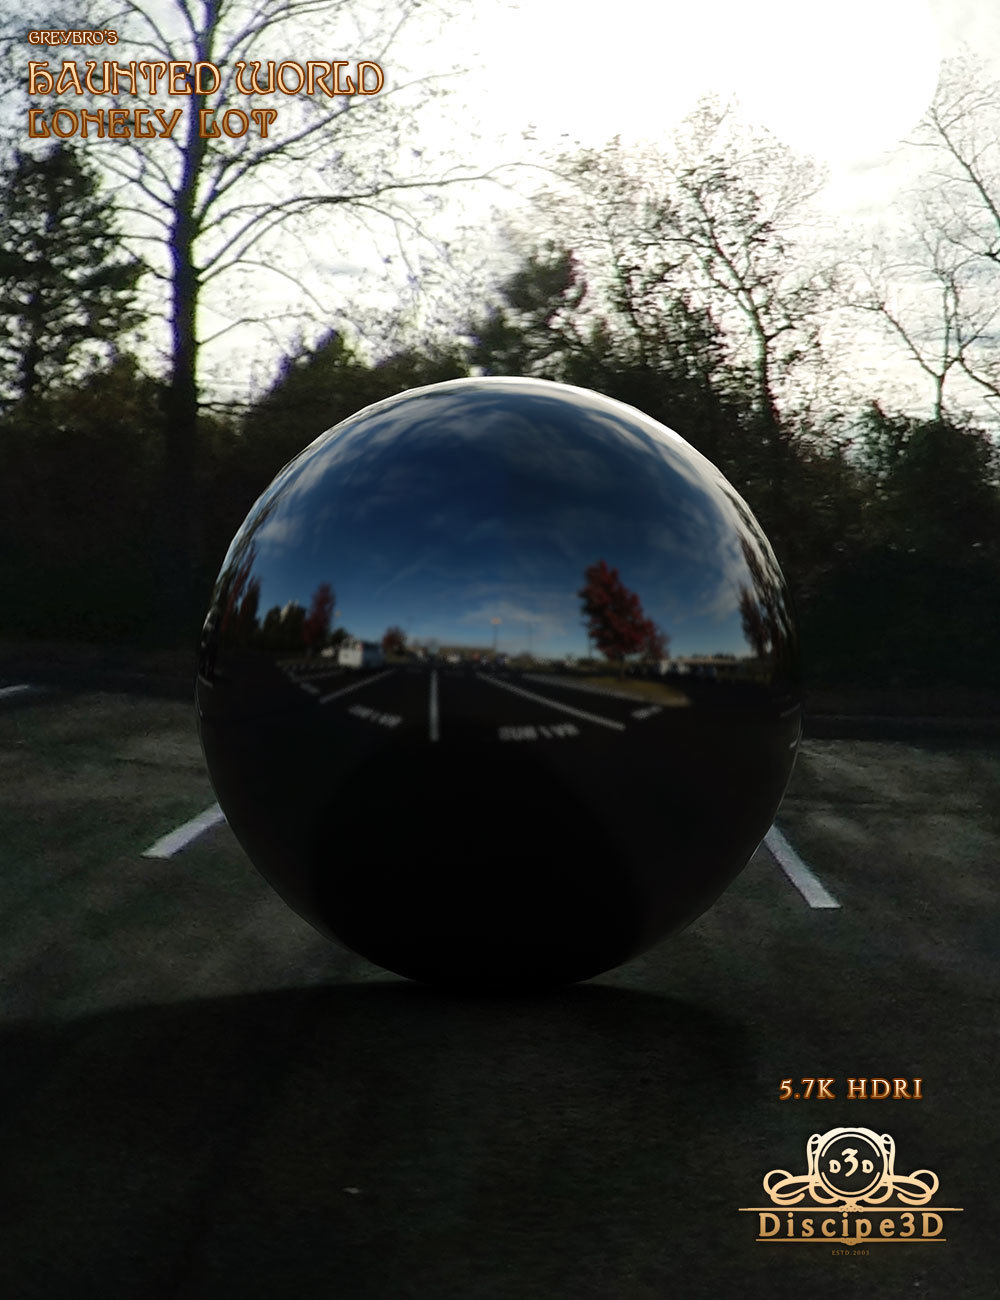 Greybro's Haunted World - Lonely Lot HDRI by Disciple3d